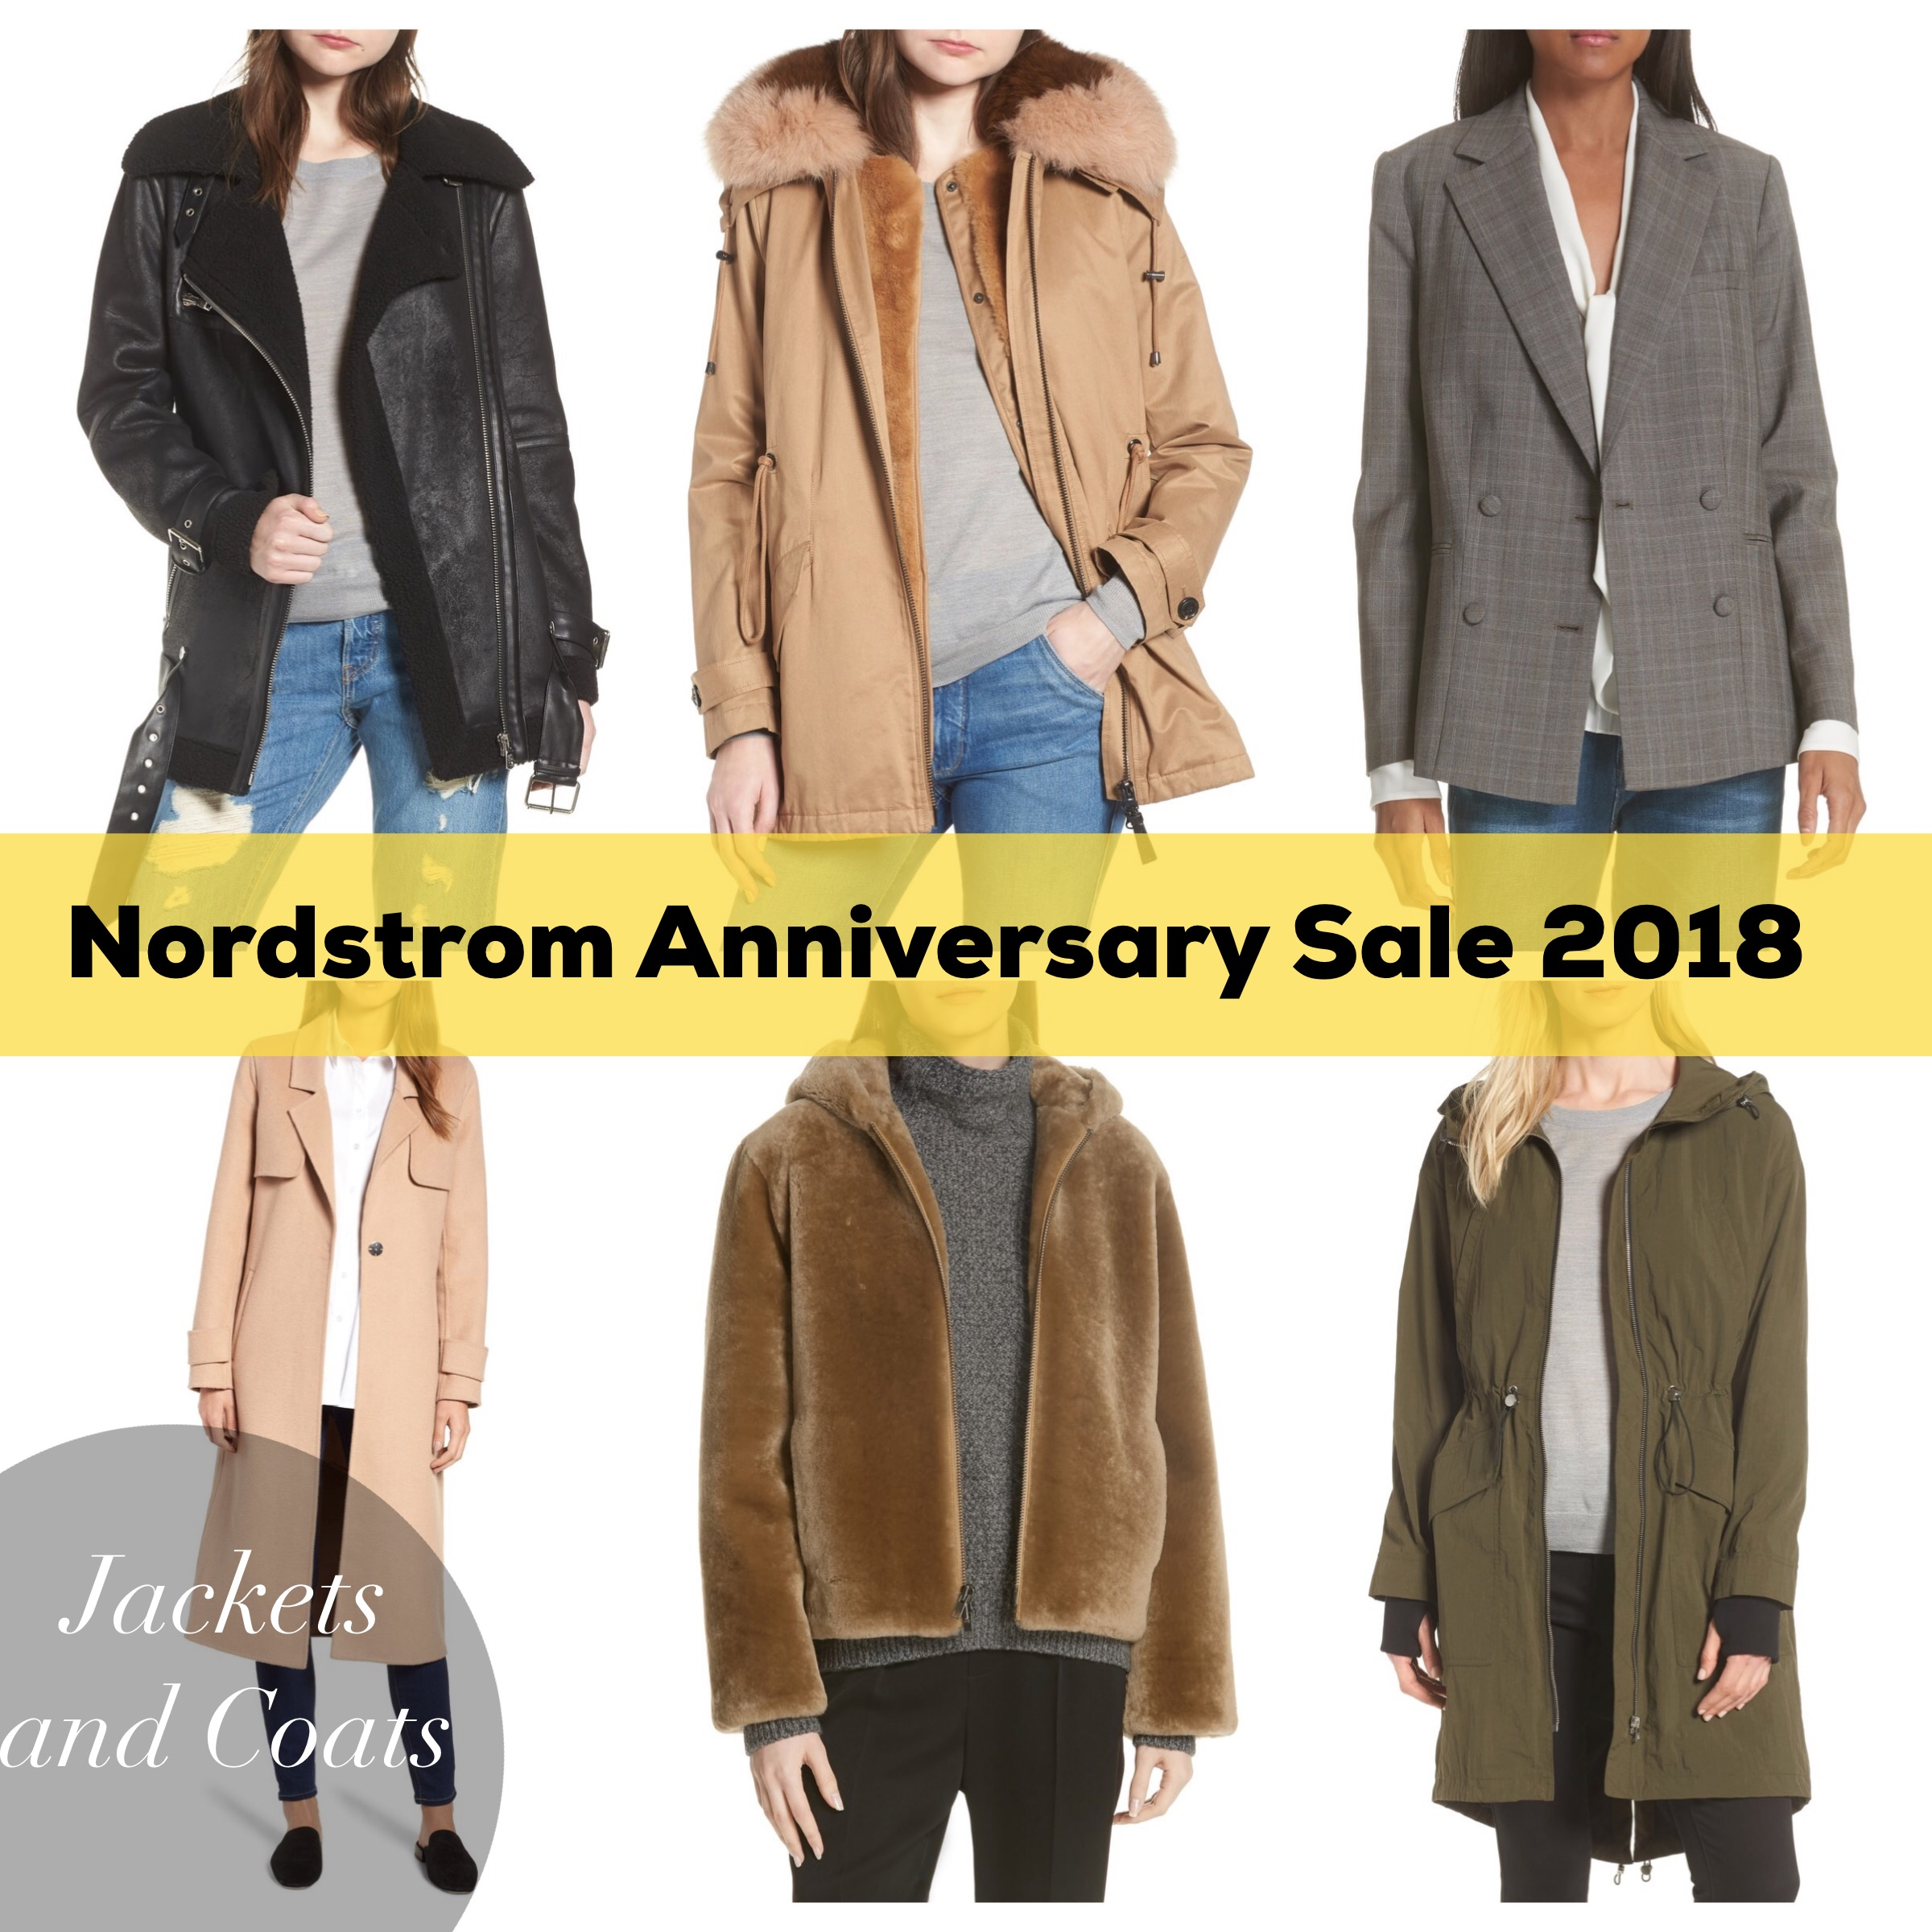 nordstrom anniversary sale jackets coats